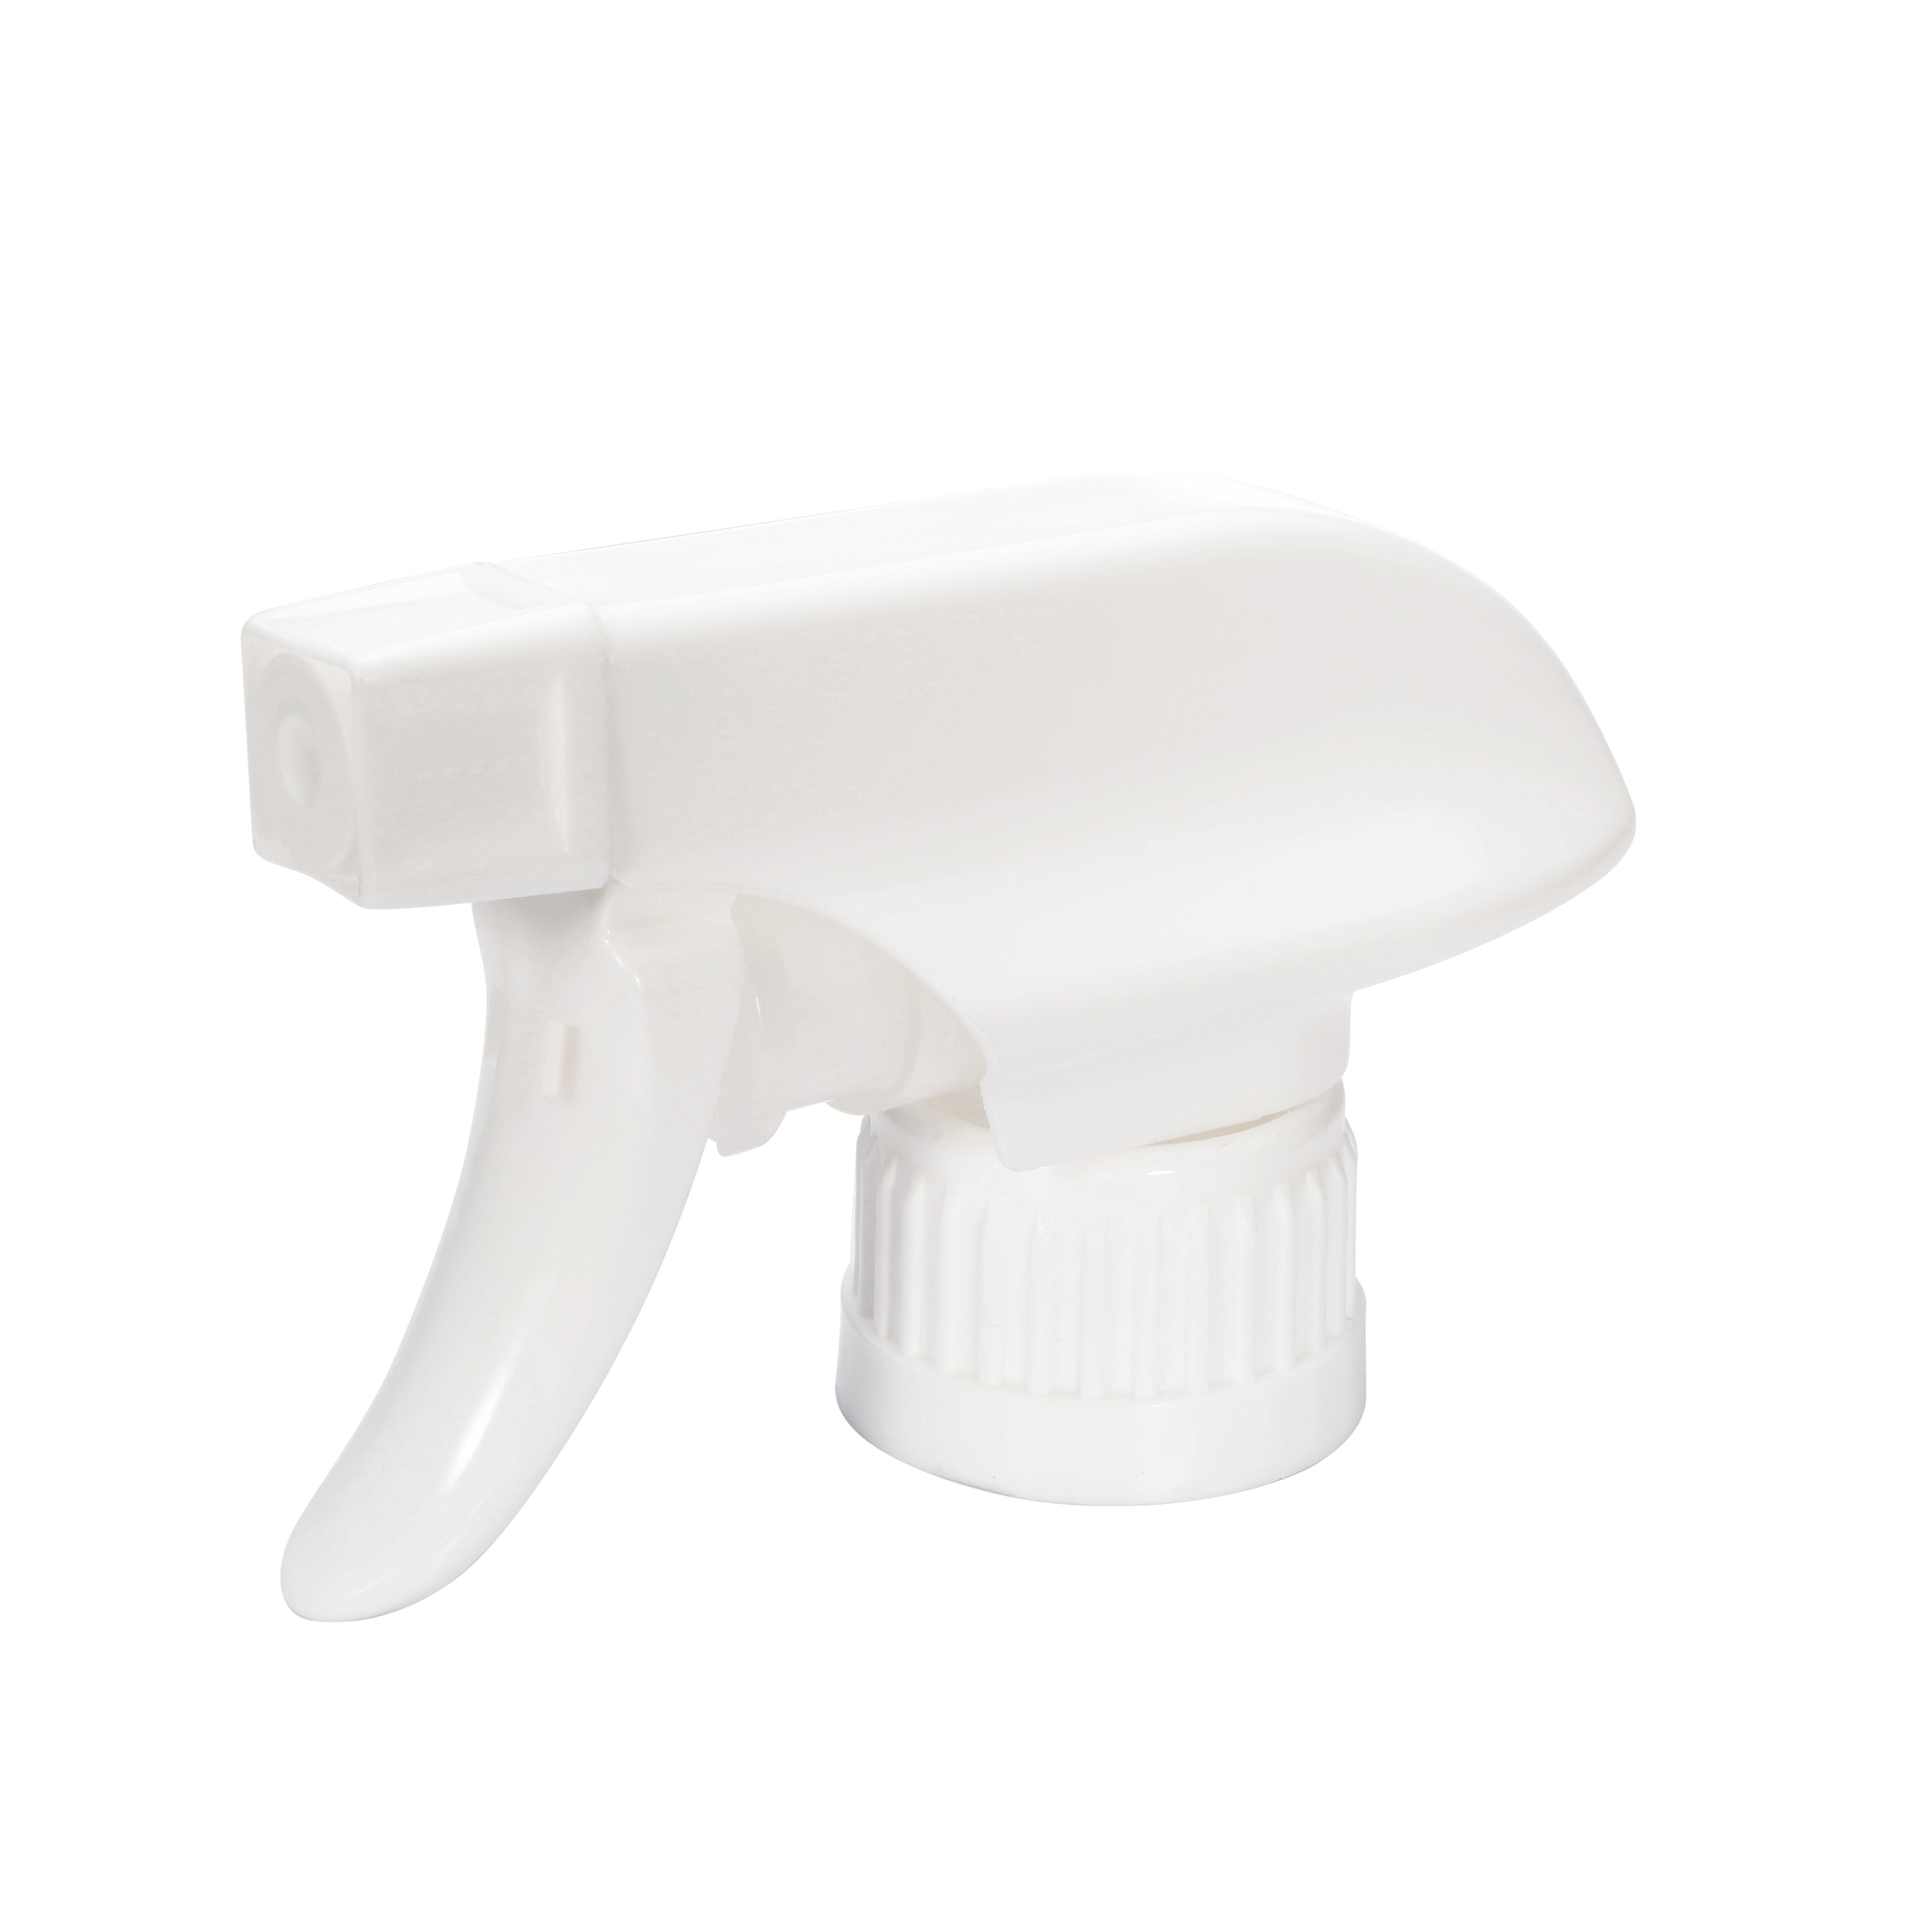 28/410 All plastic trigger sprayer head for cleaning